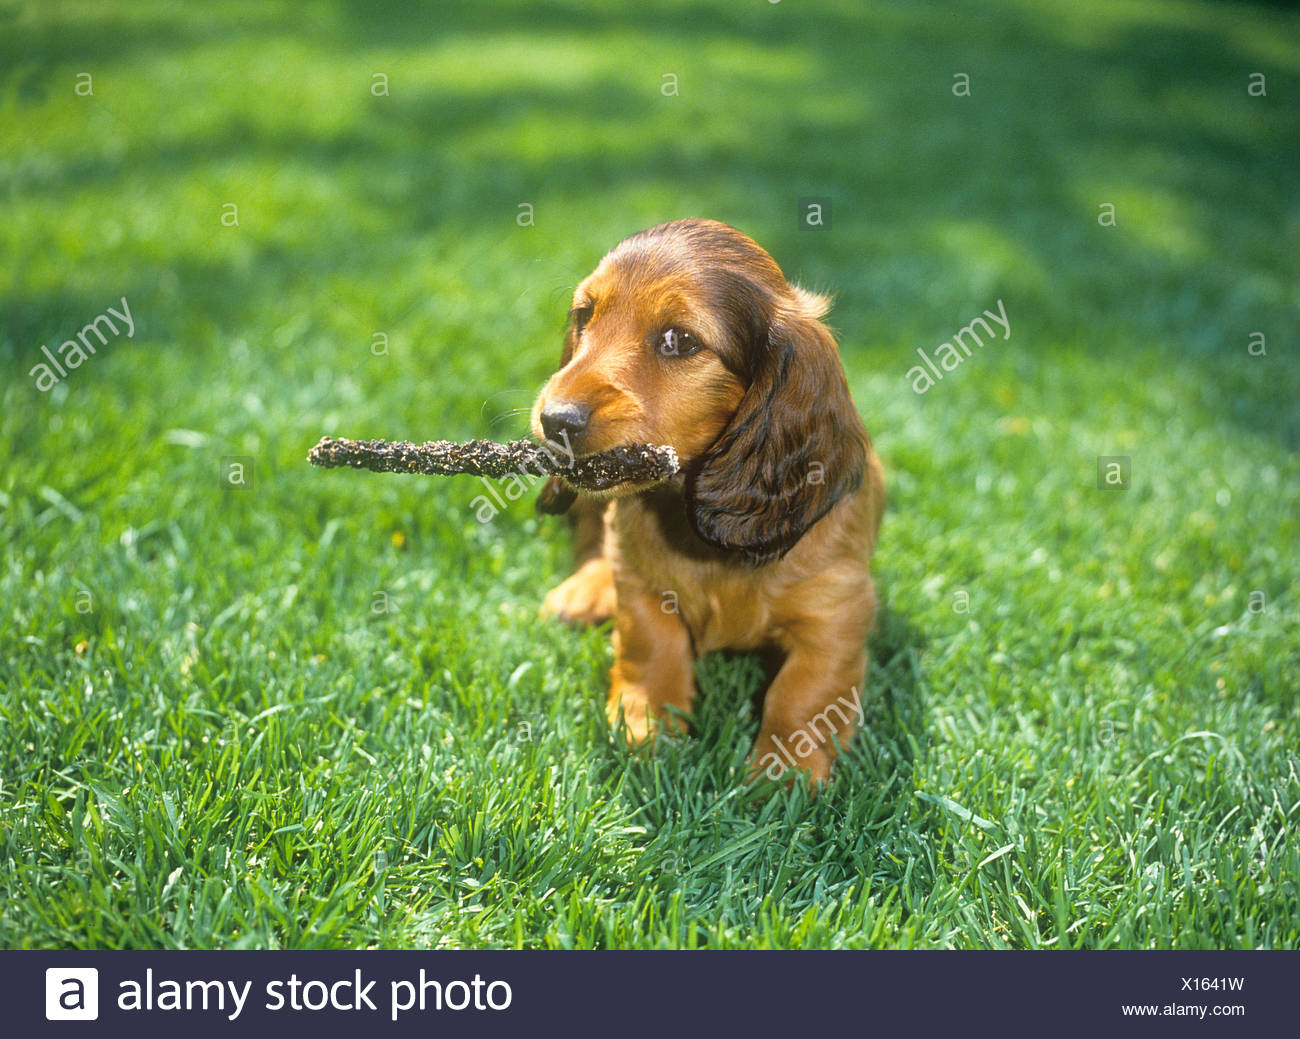 longhaired dachshund puppy with stick in muzzle Stock Photo